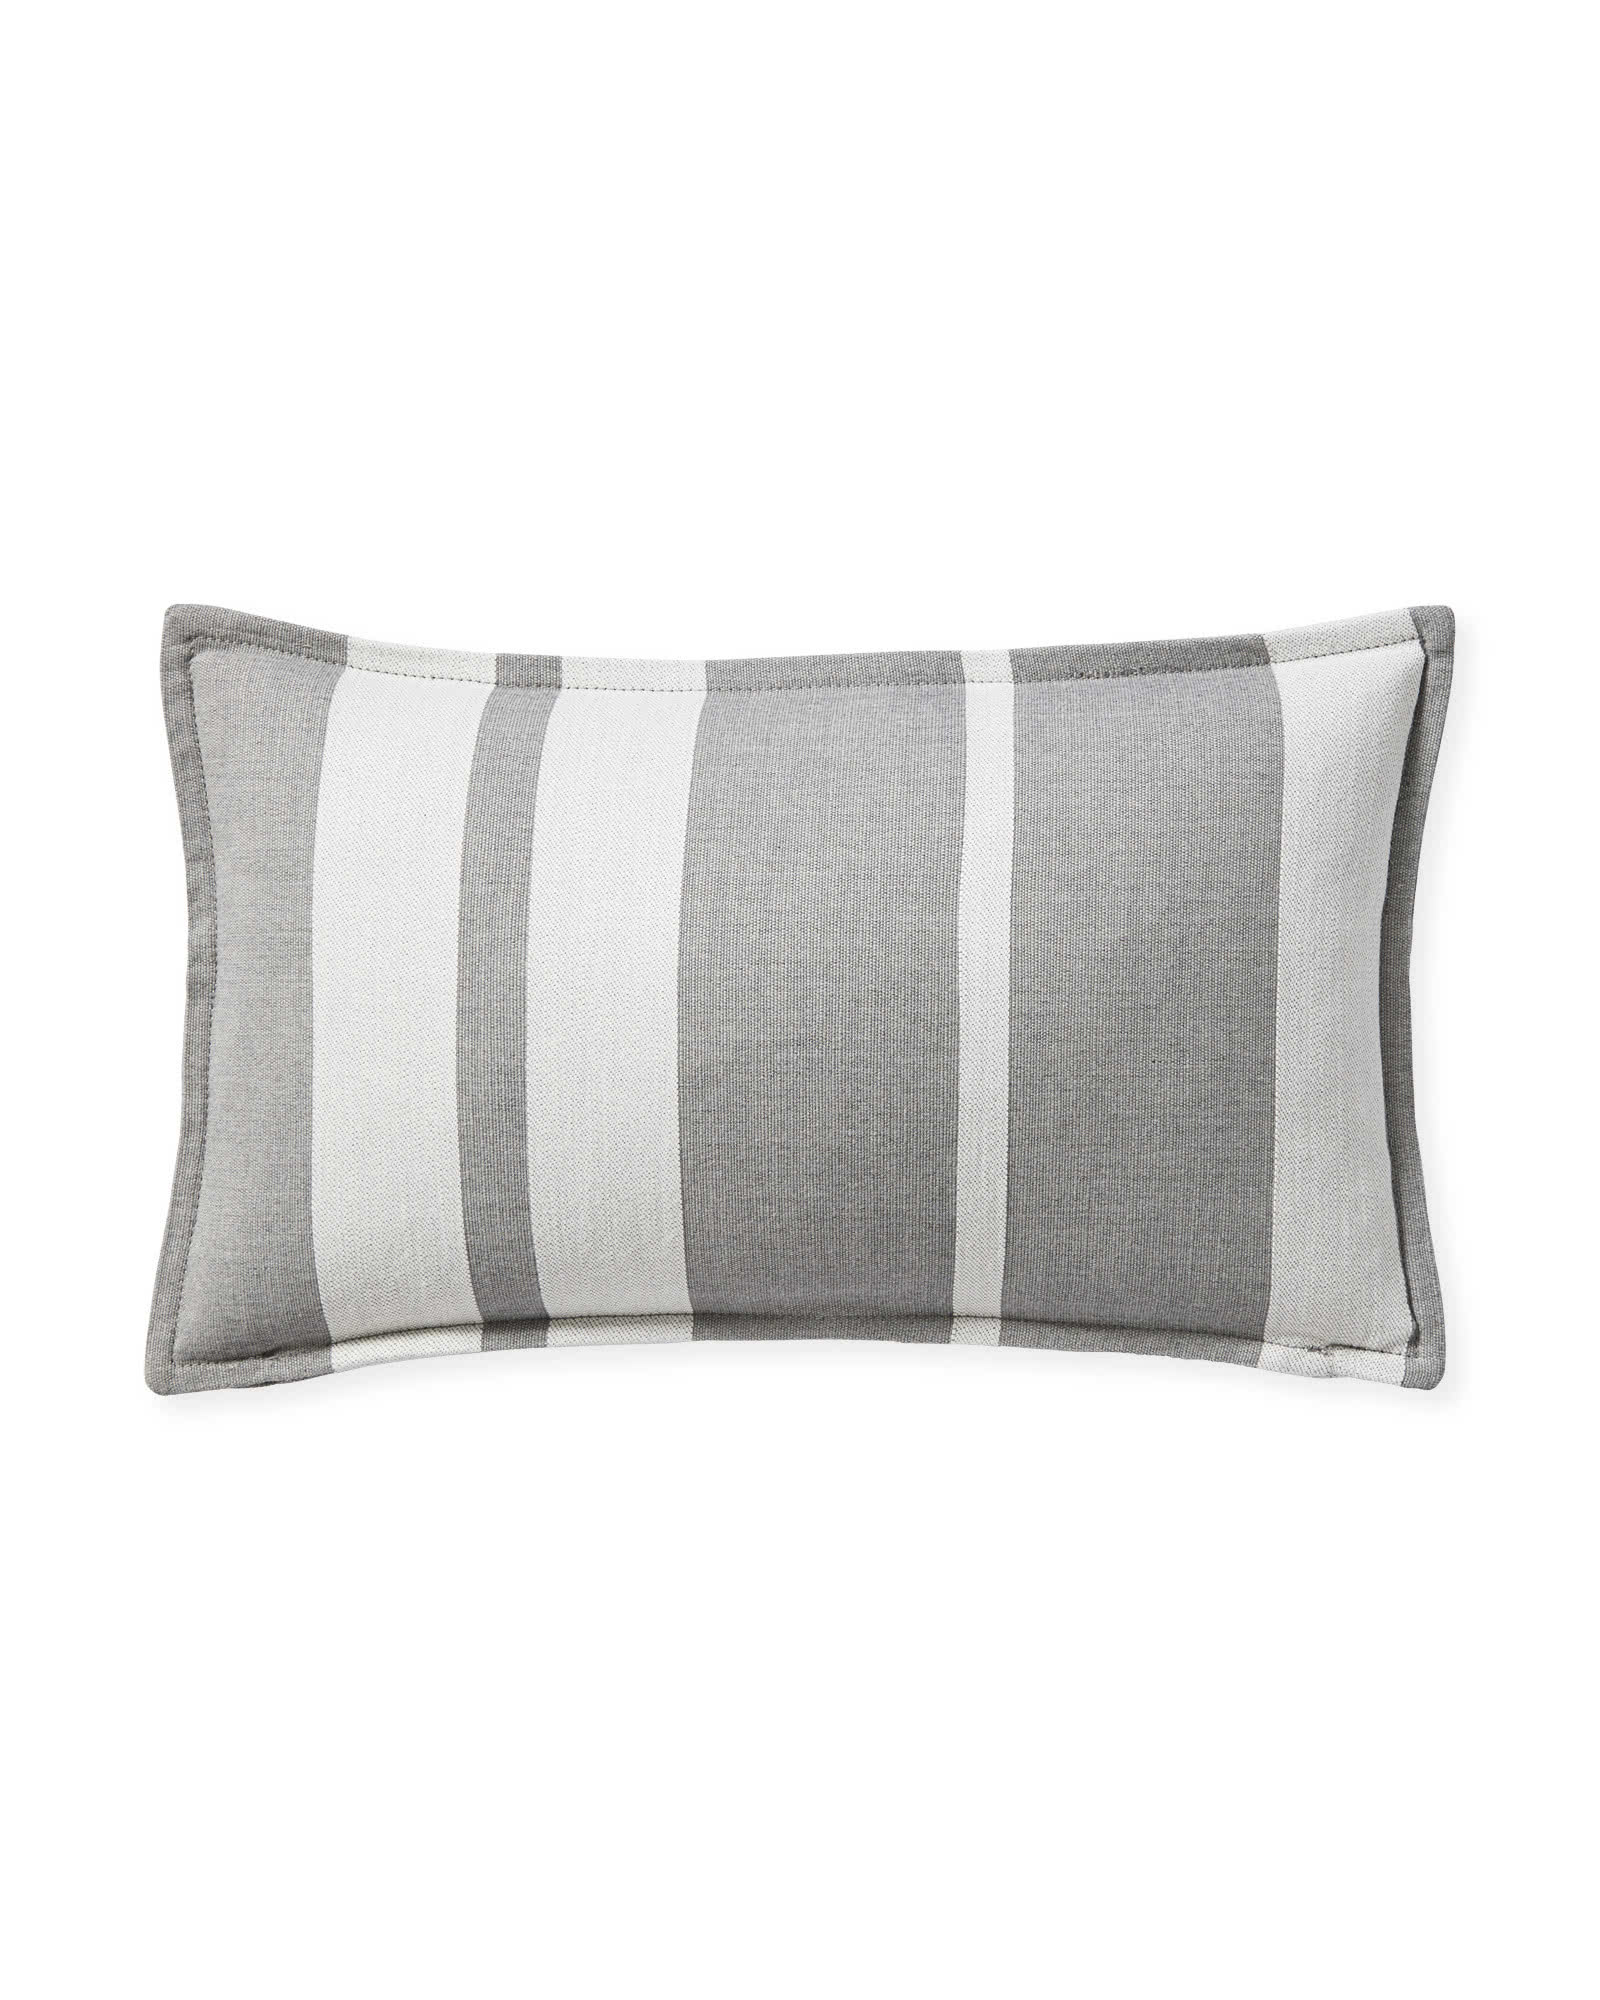 Perennials® Variegated Stripe Outdoor Pillow Cover,